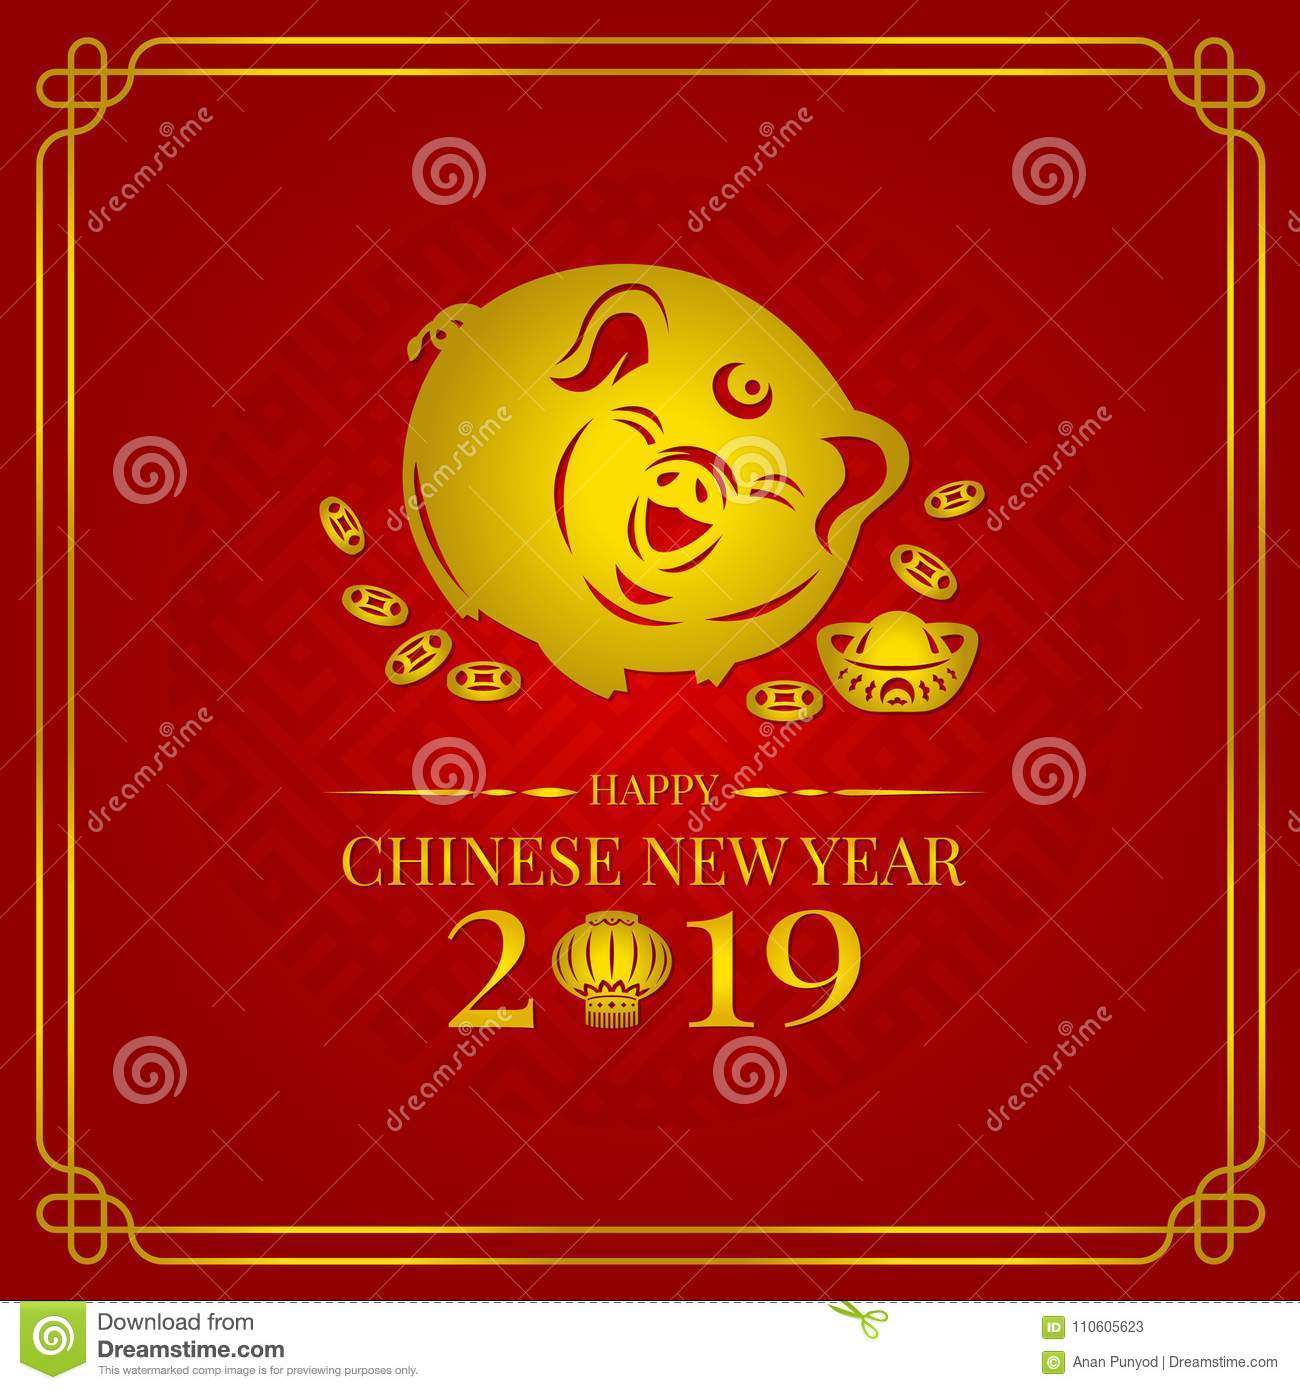 happy chinese new year 2019 banner card with gold pig zodiac sign and china money coin